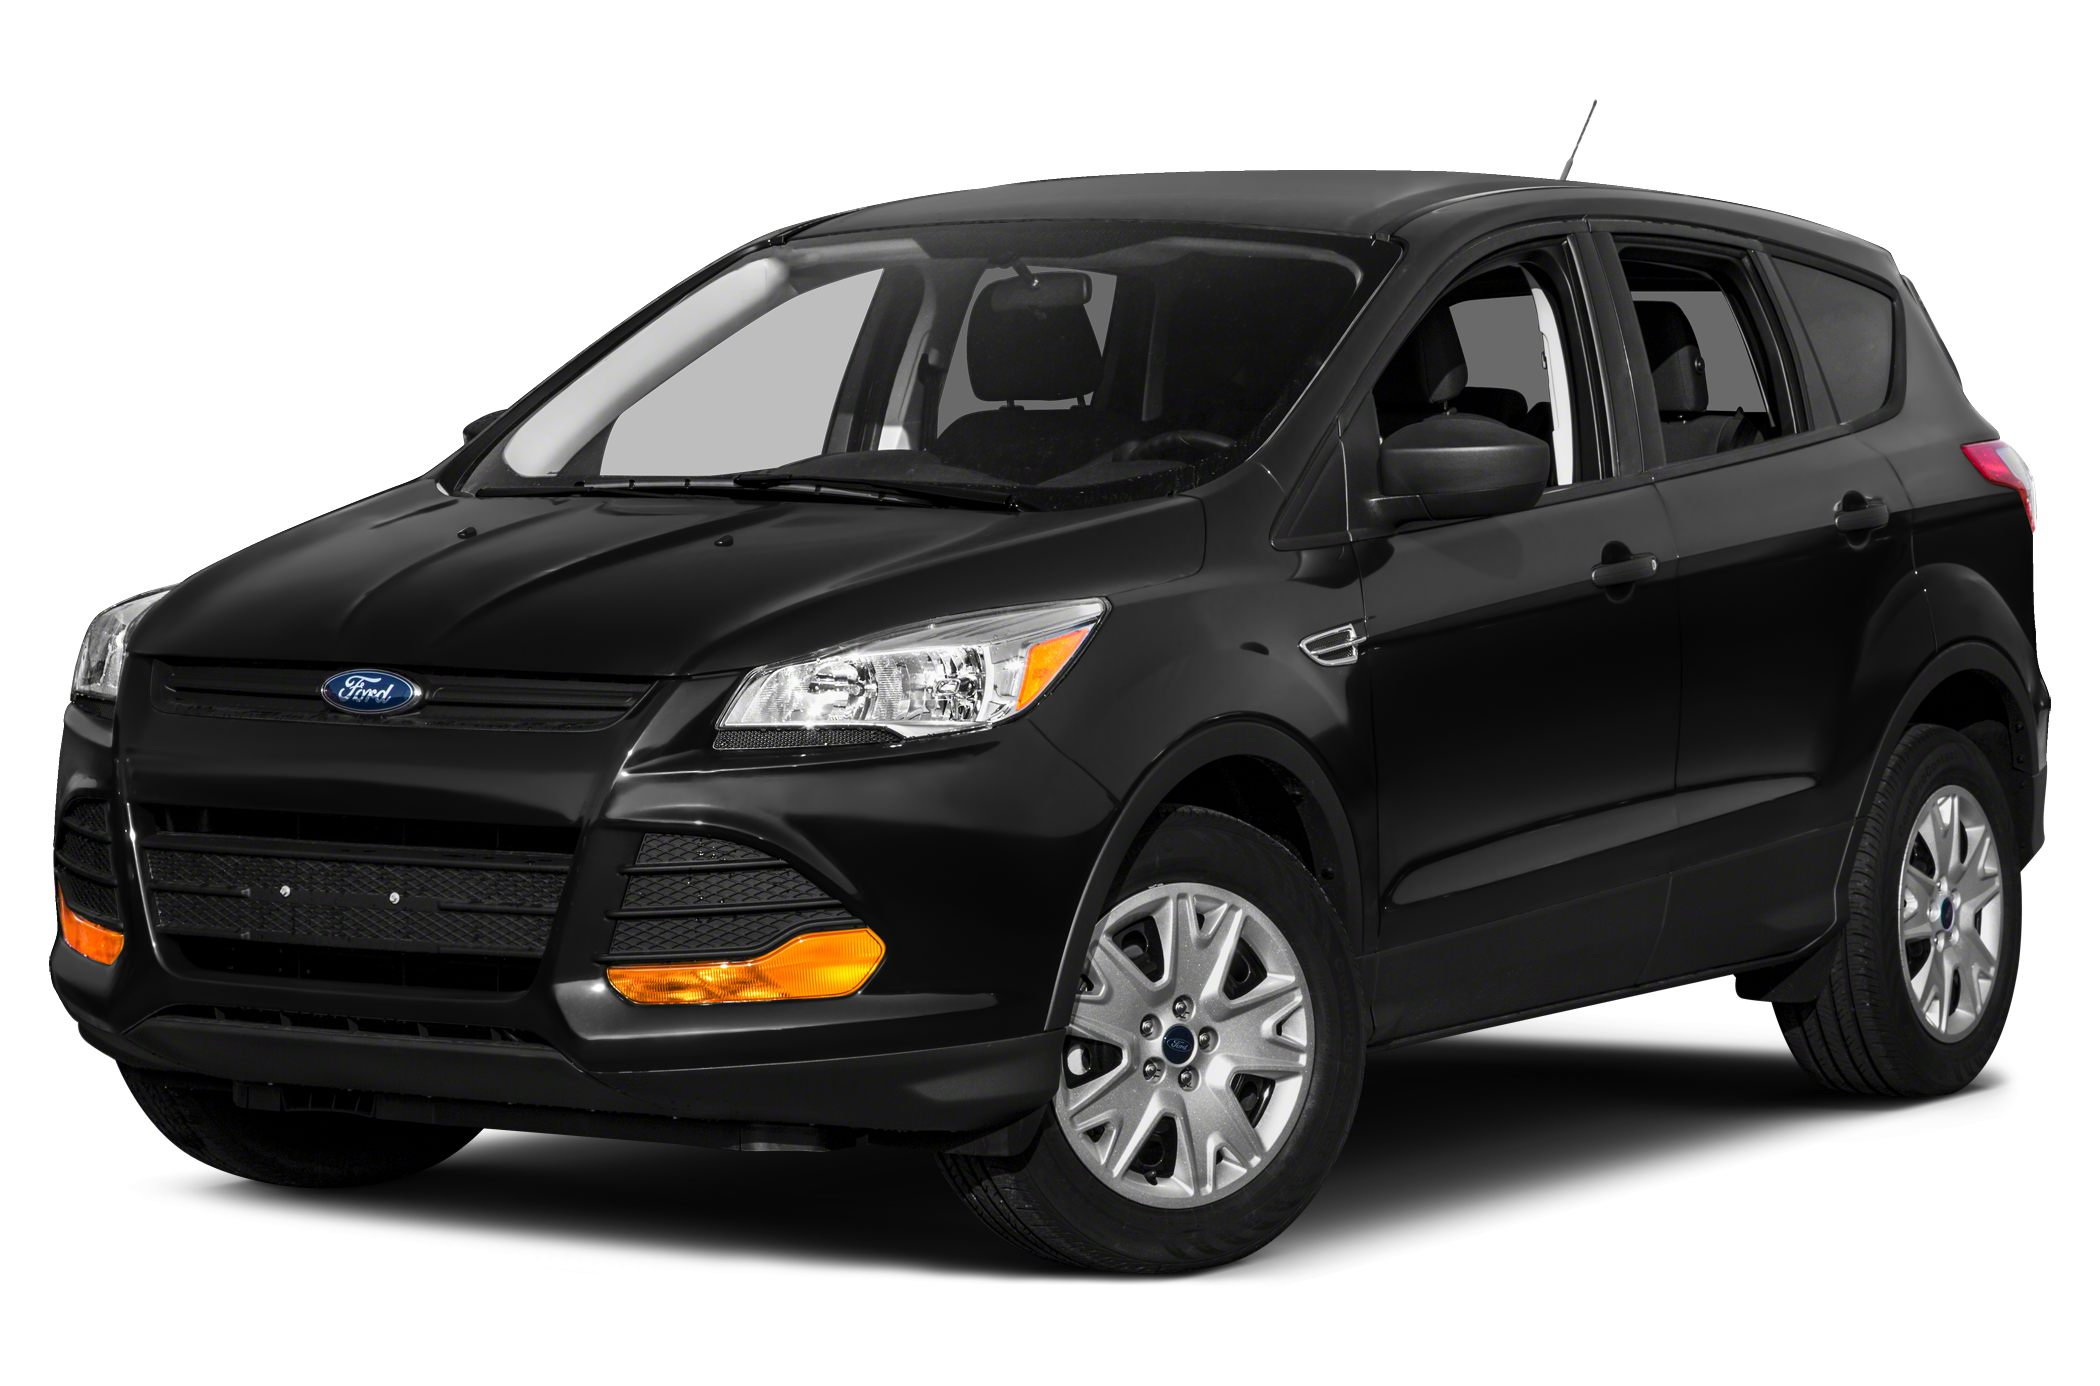 2013 Ford Escape Safety Features